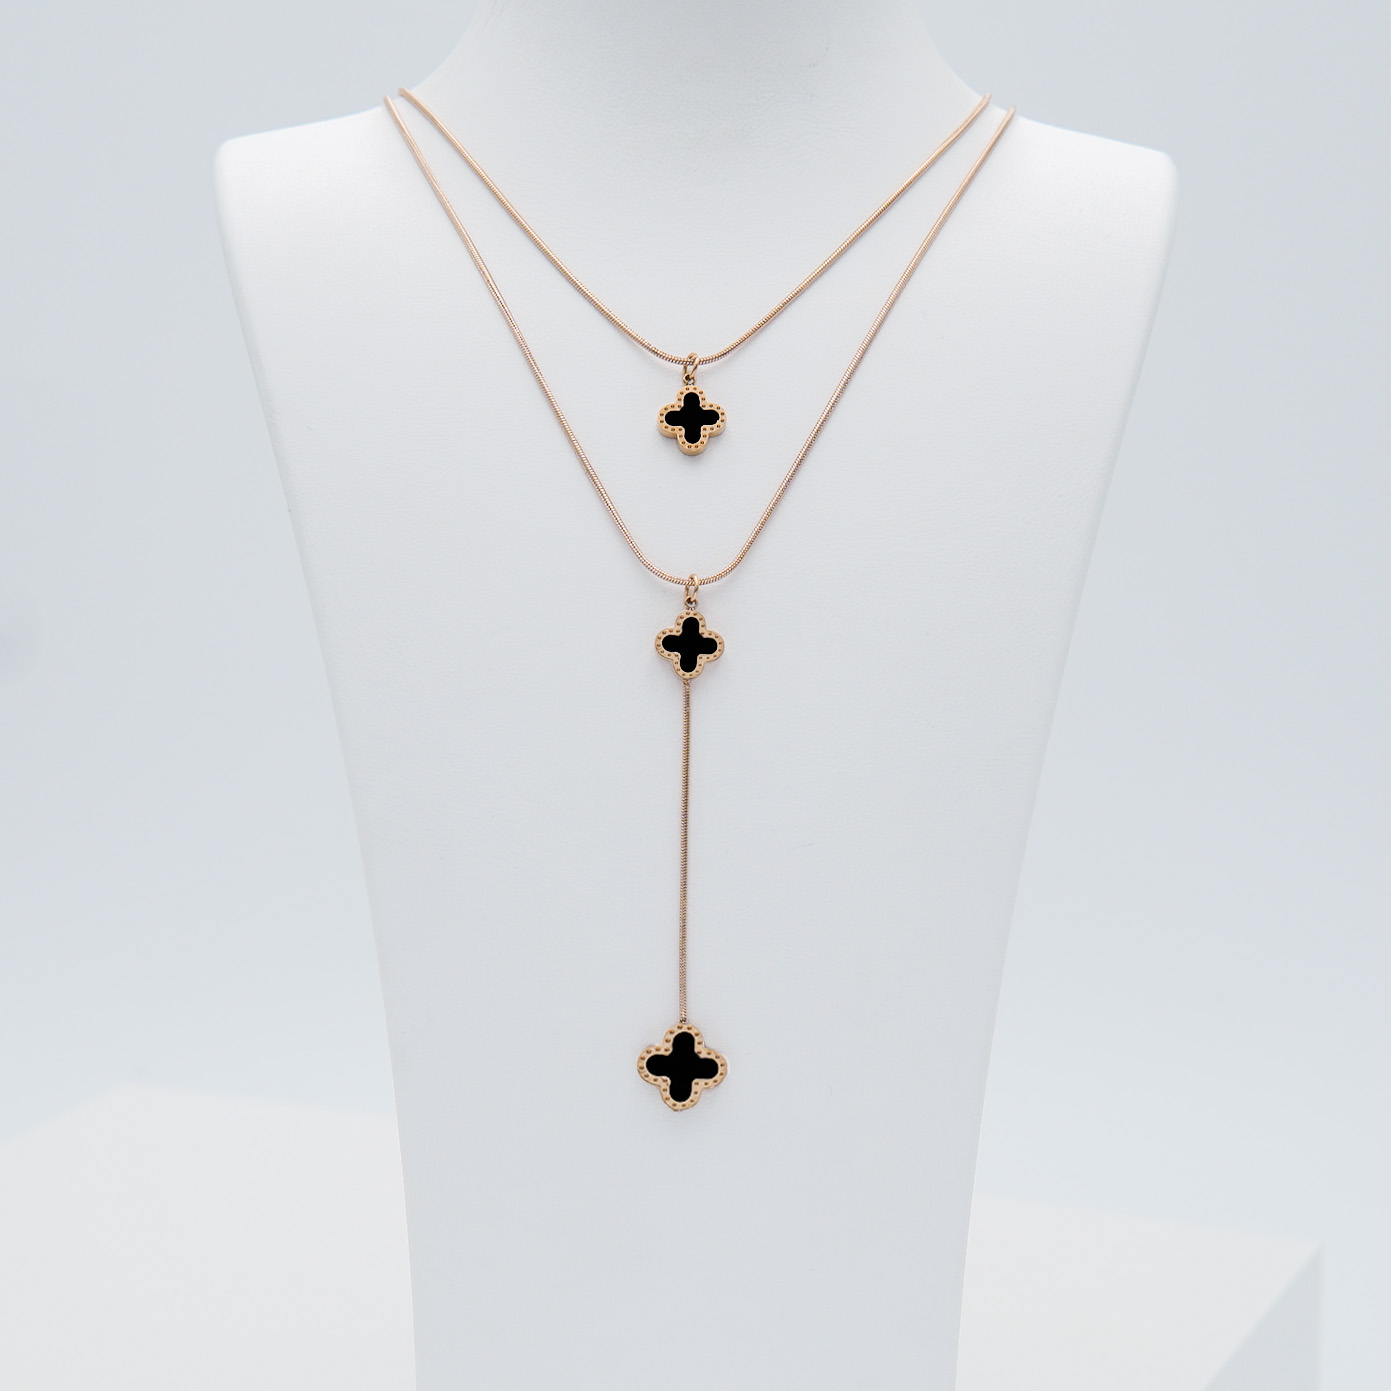 2- Clover Lucky Forever Rose Edition Halsband Modern and trendy Necklace and women jewelry and accessories from SWEVALI fashion Sweden